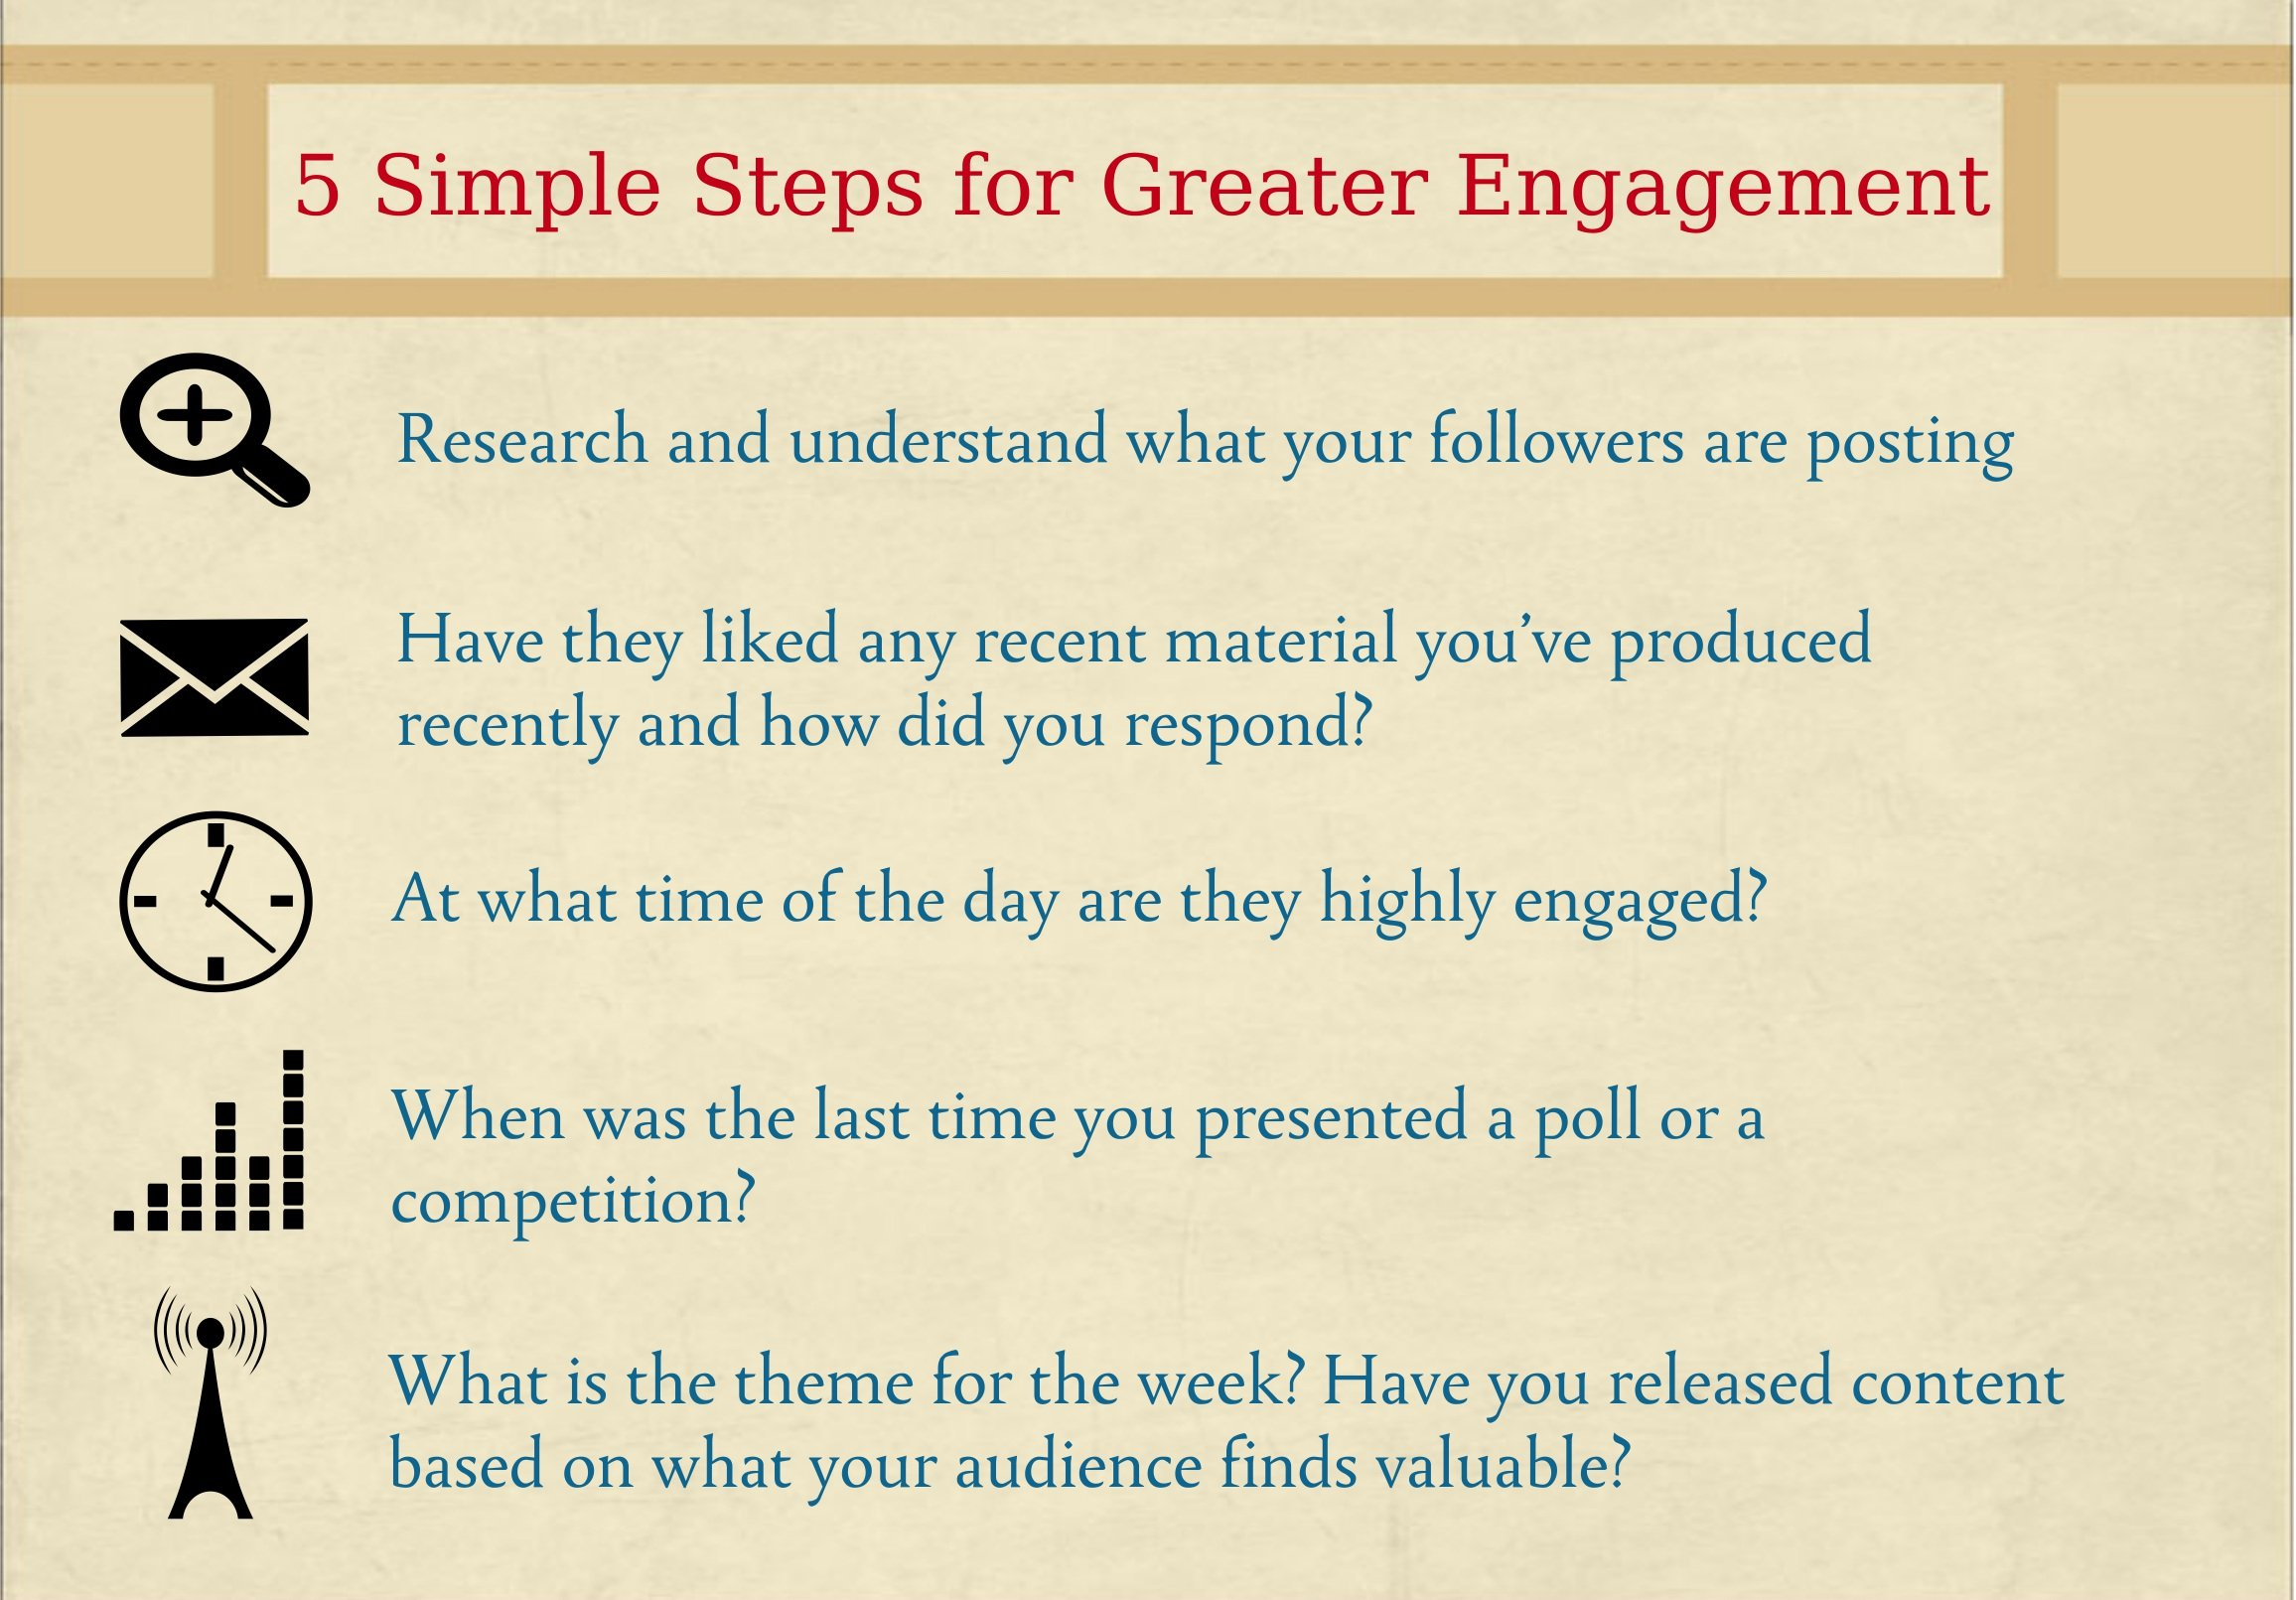 5 simple steps for greater engagement